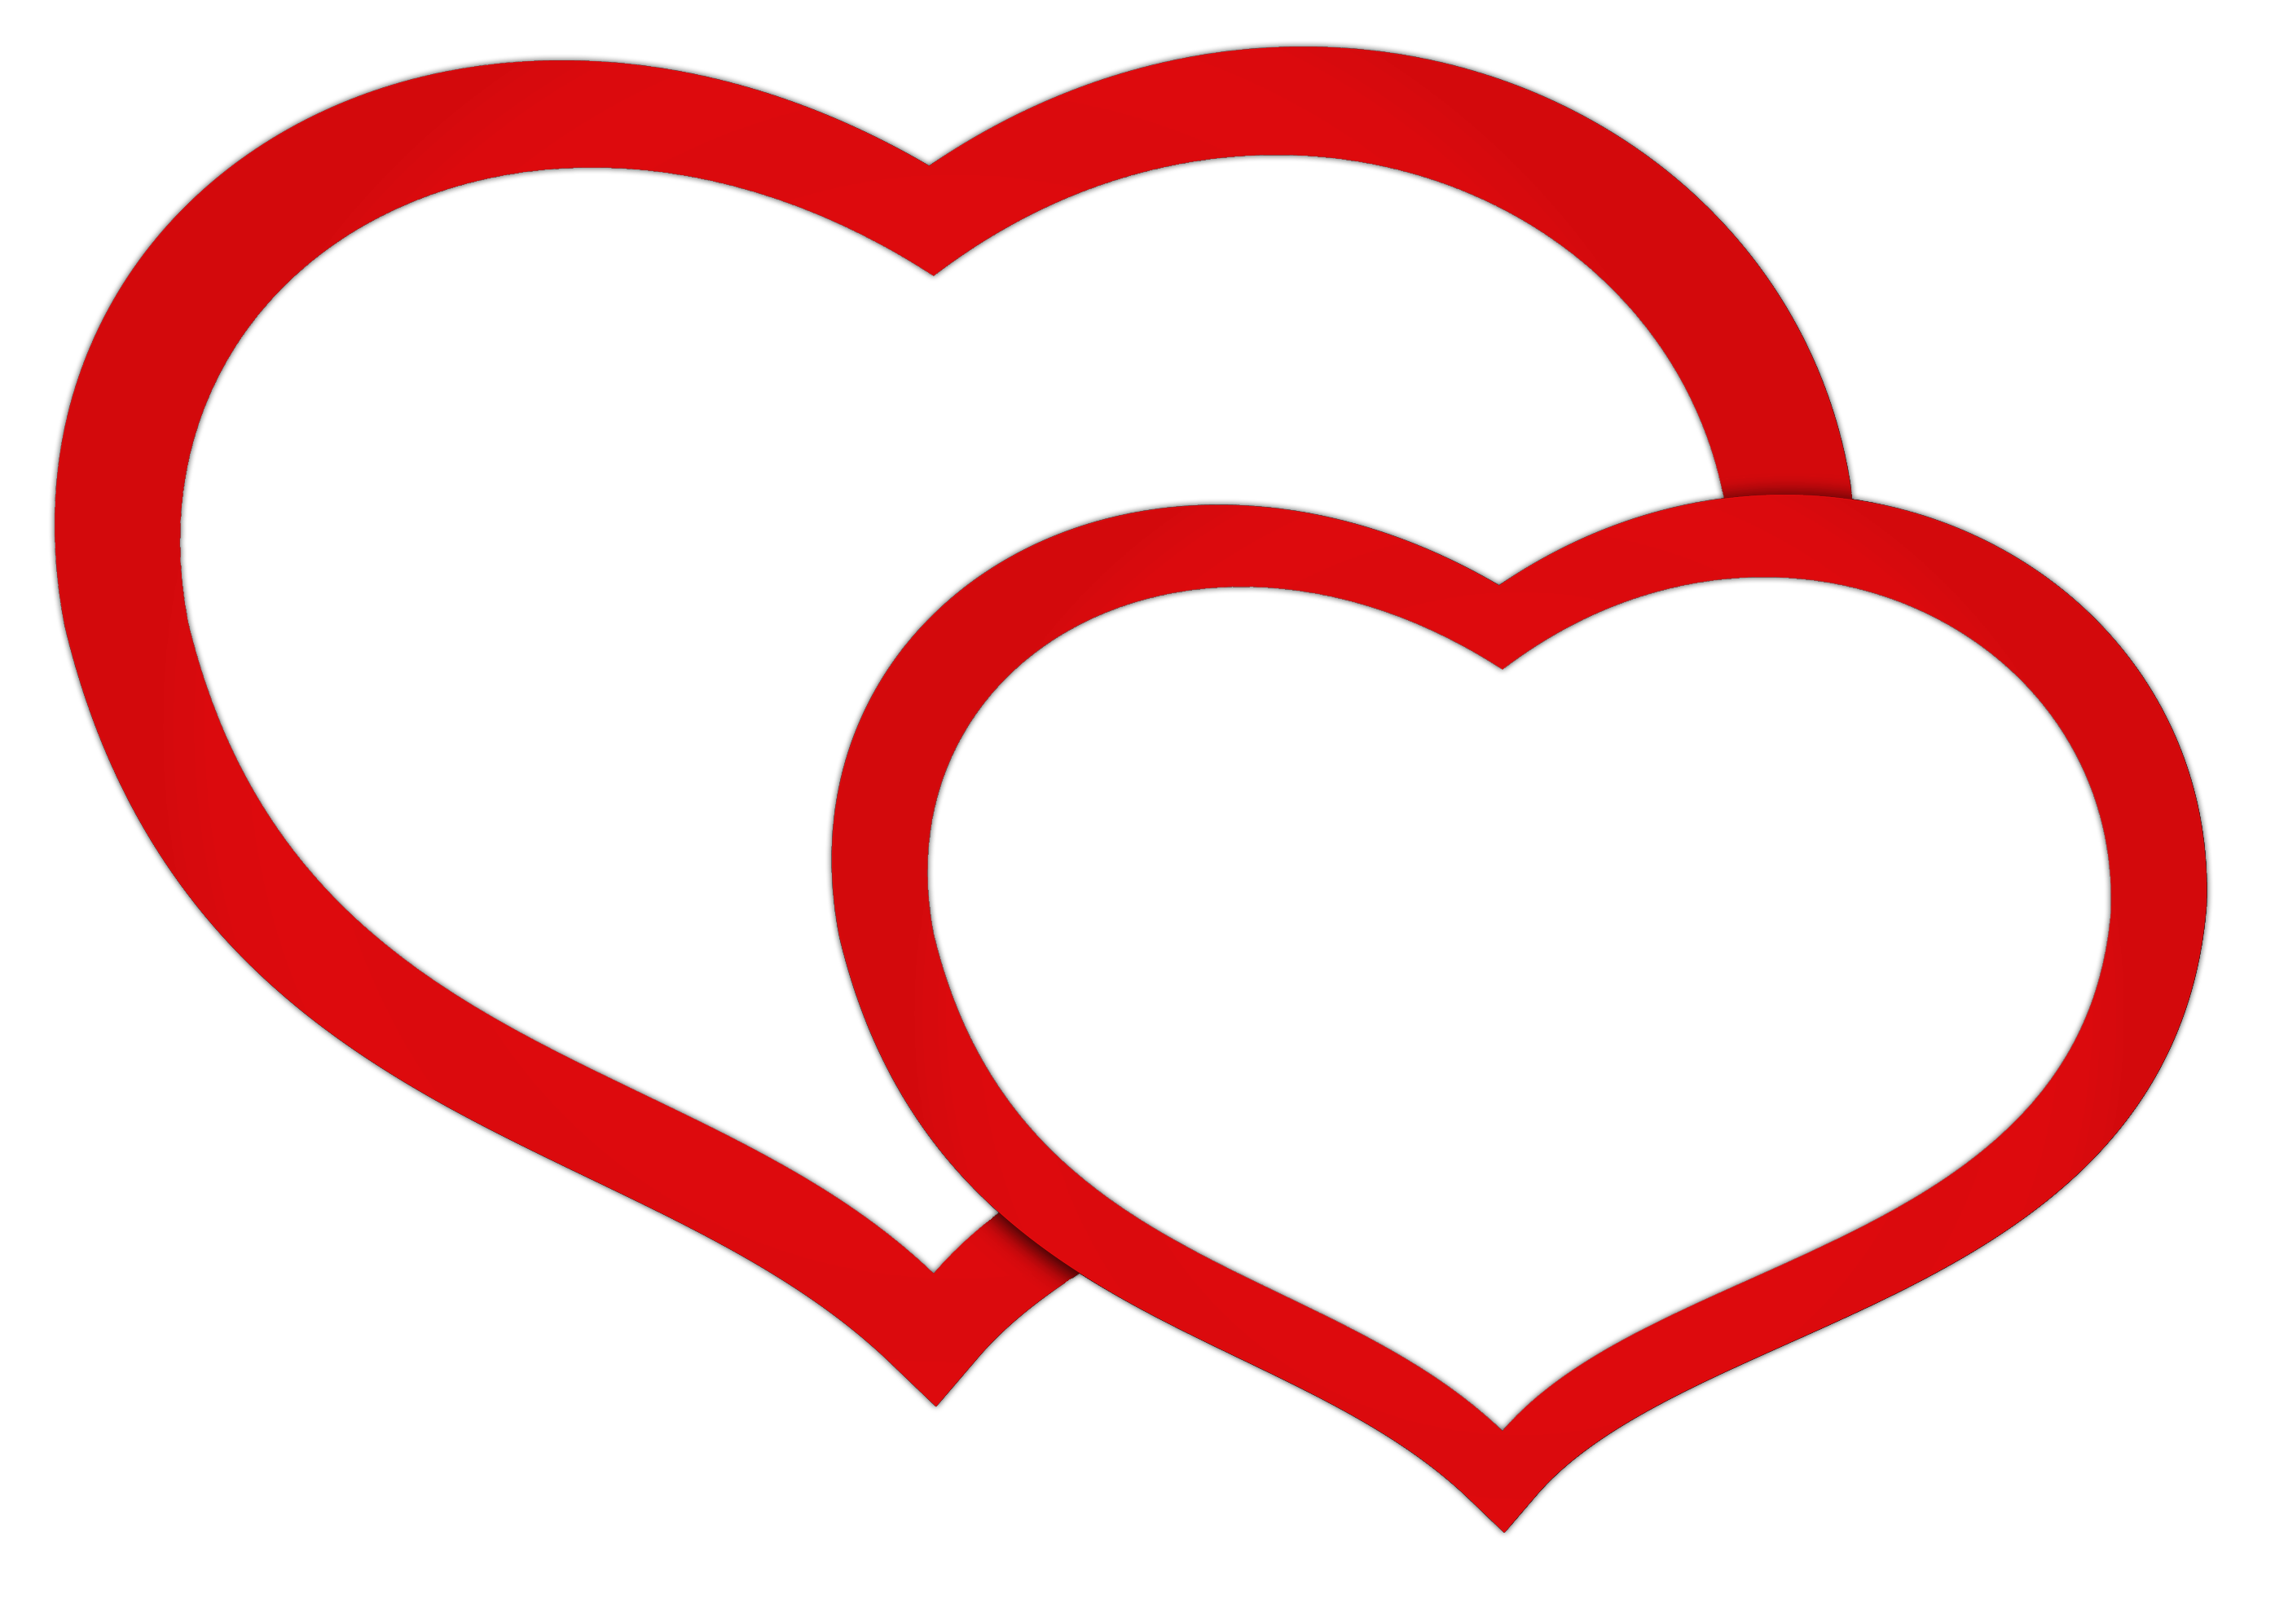 Heart Shaped Clipart | Free download best Heart Shaped ...